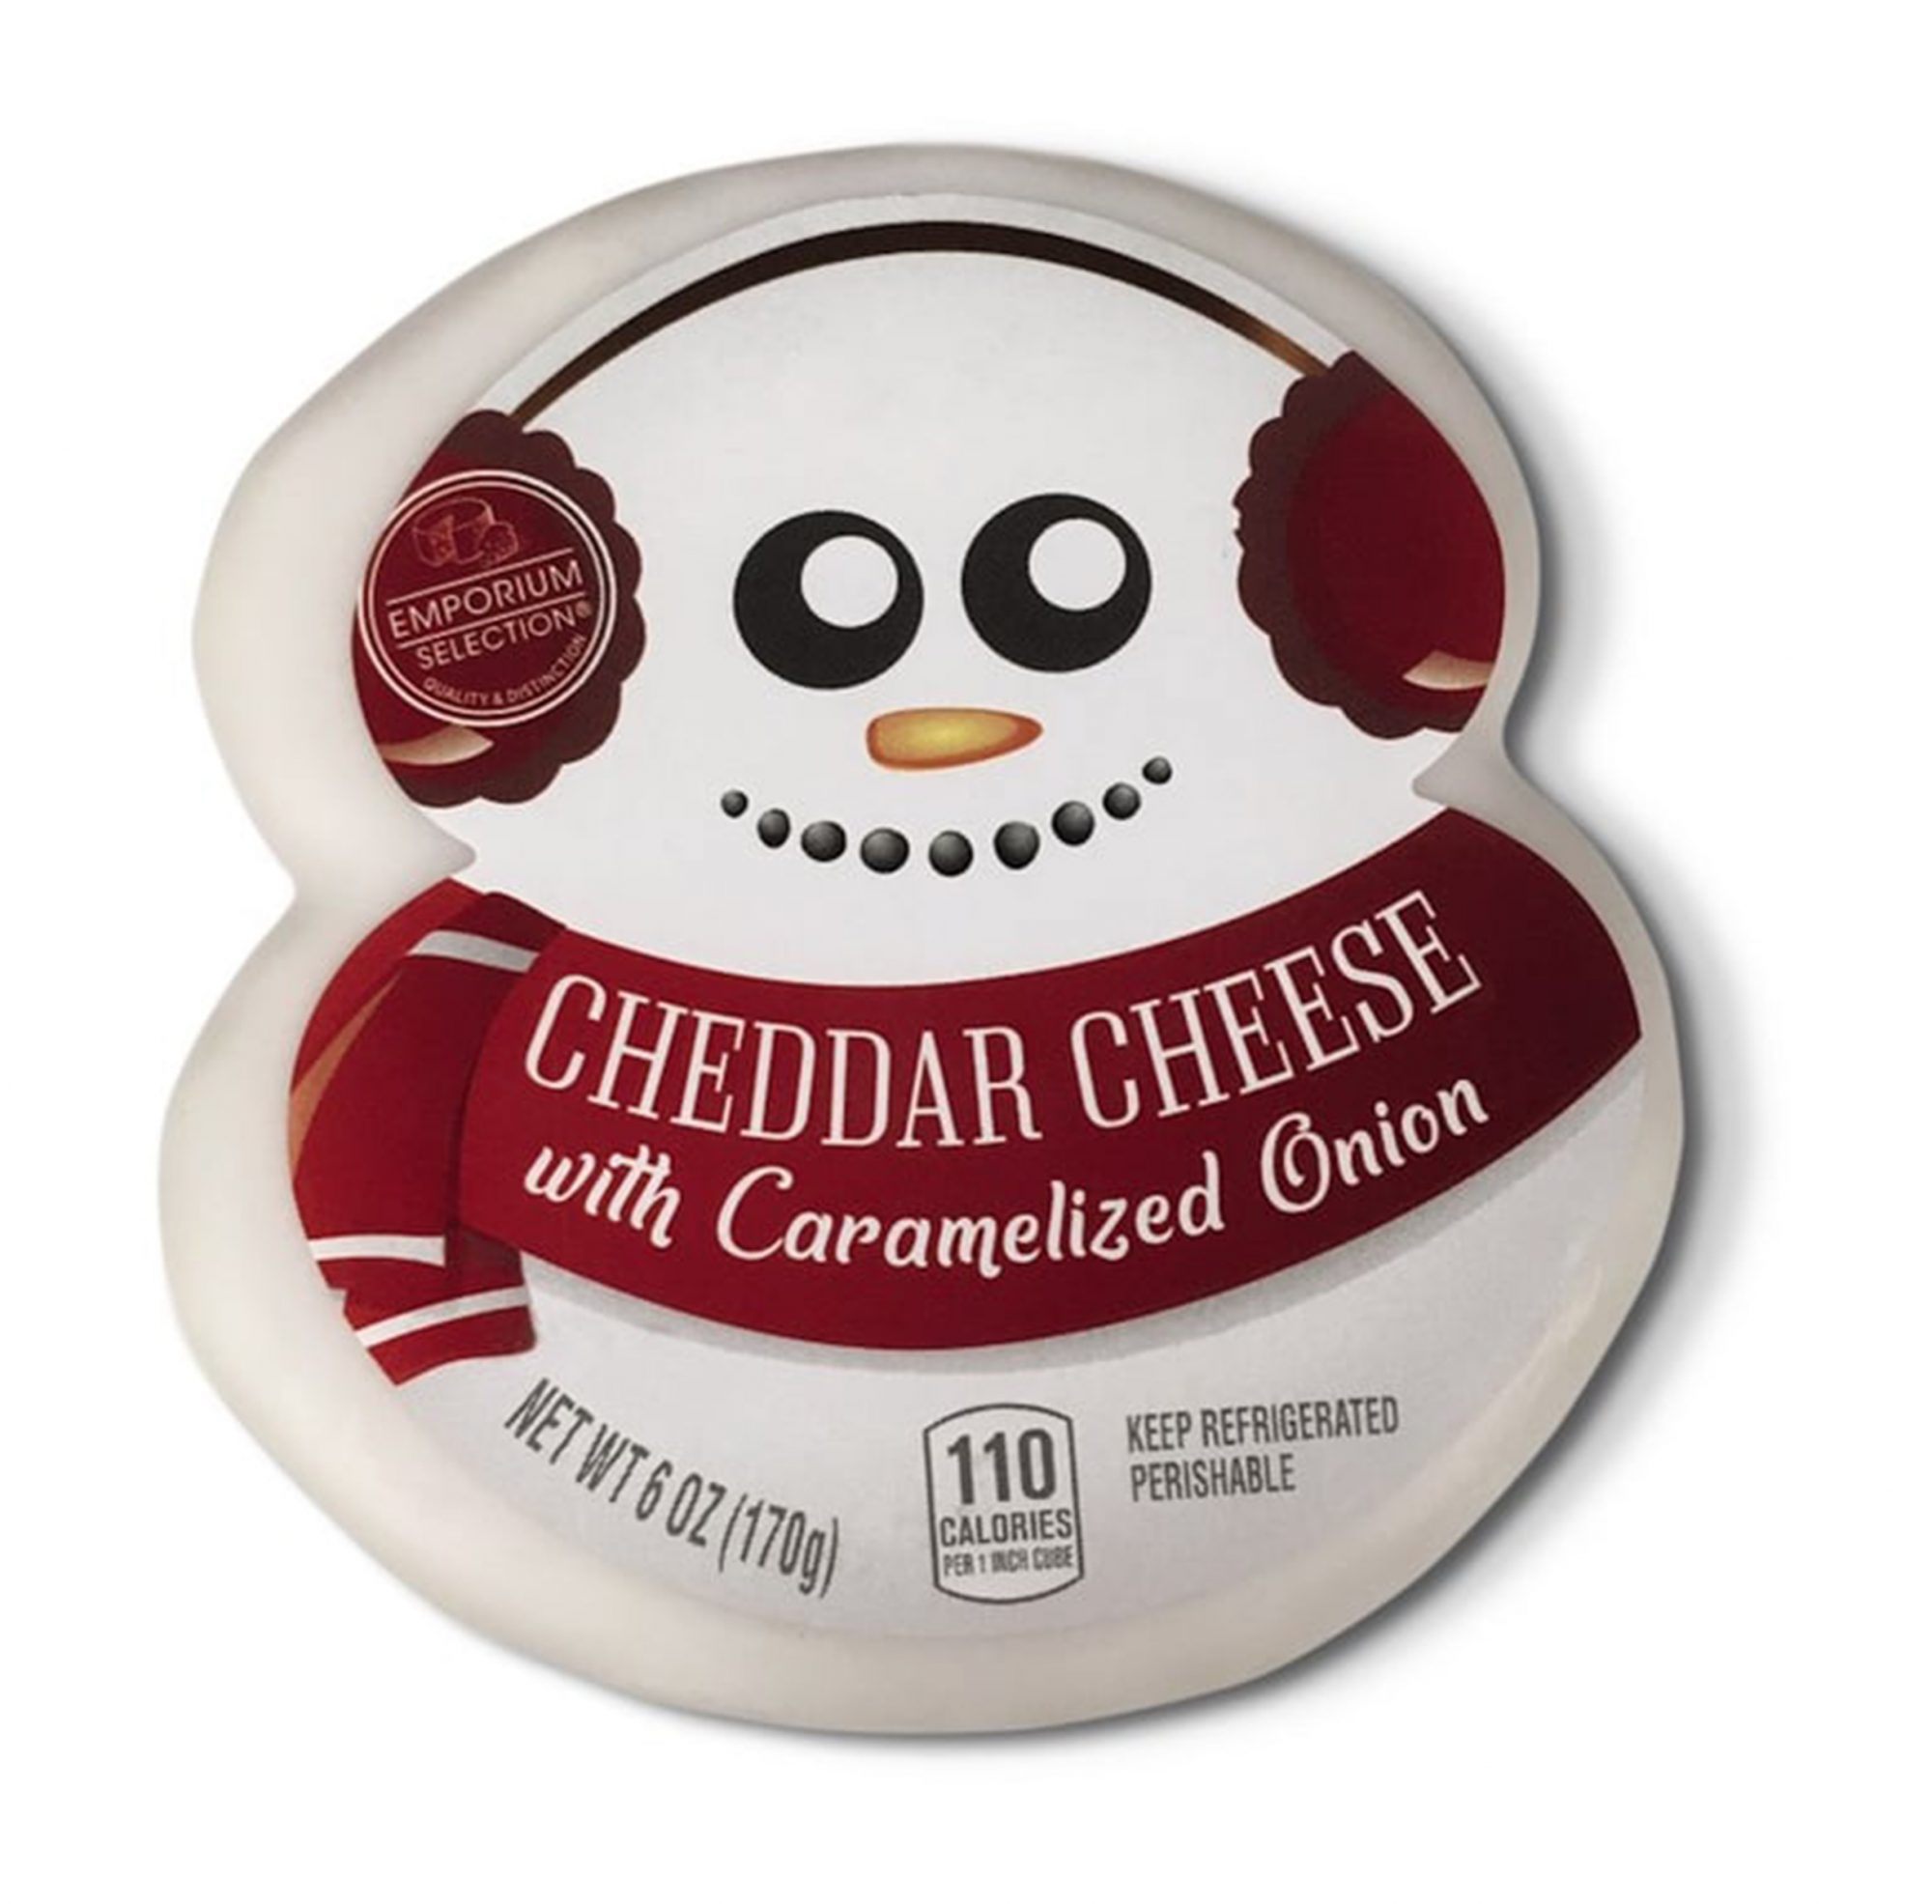 Aldi Christmas themed cheese